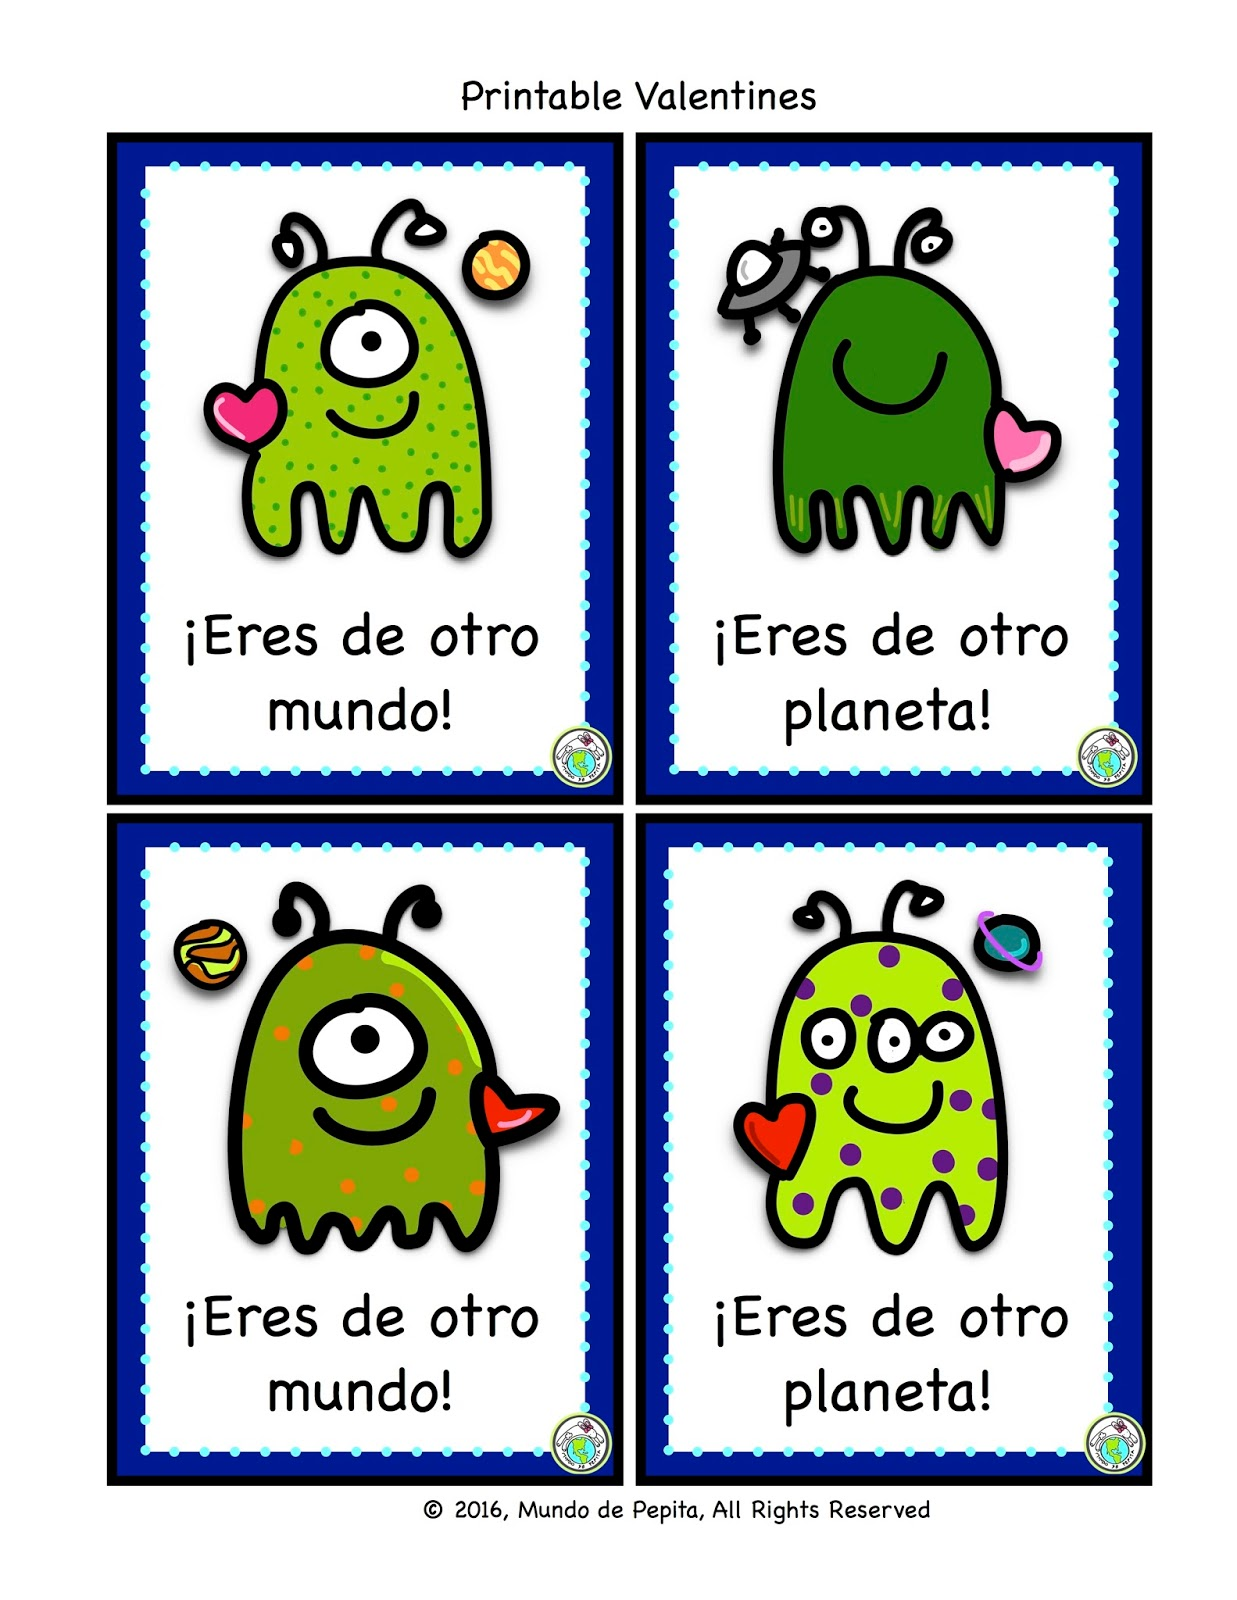 This is an image of Peaceful Spanish Birthday Cards Printable